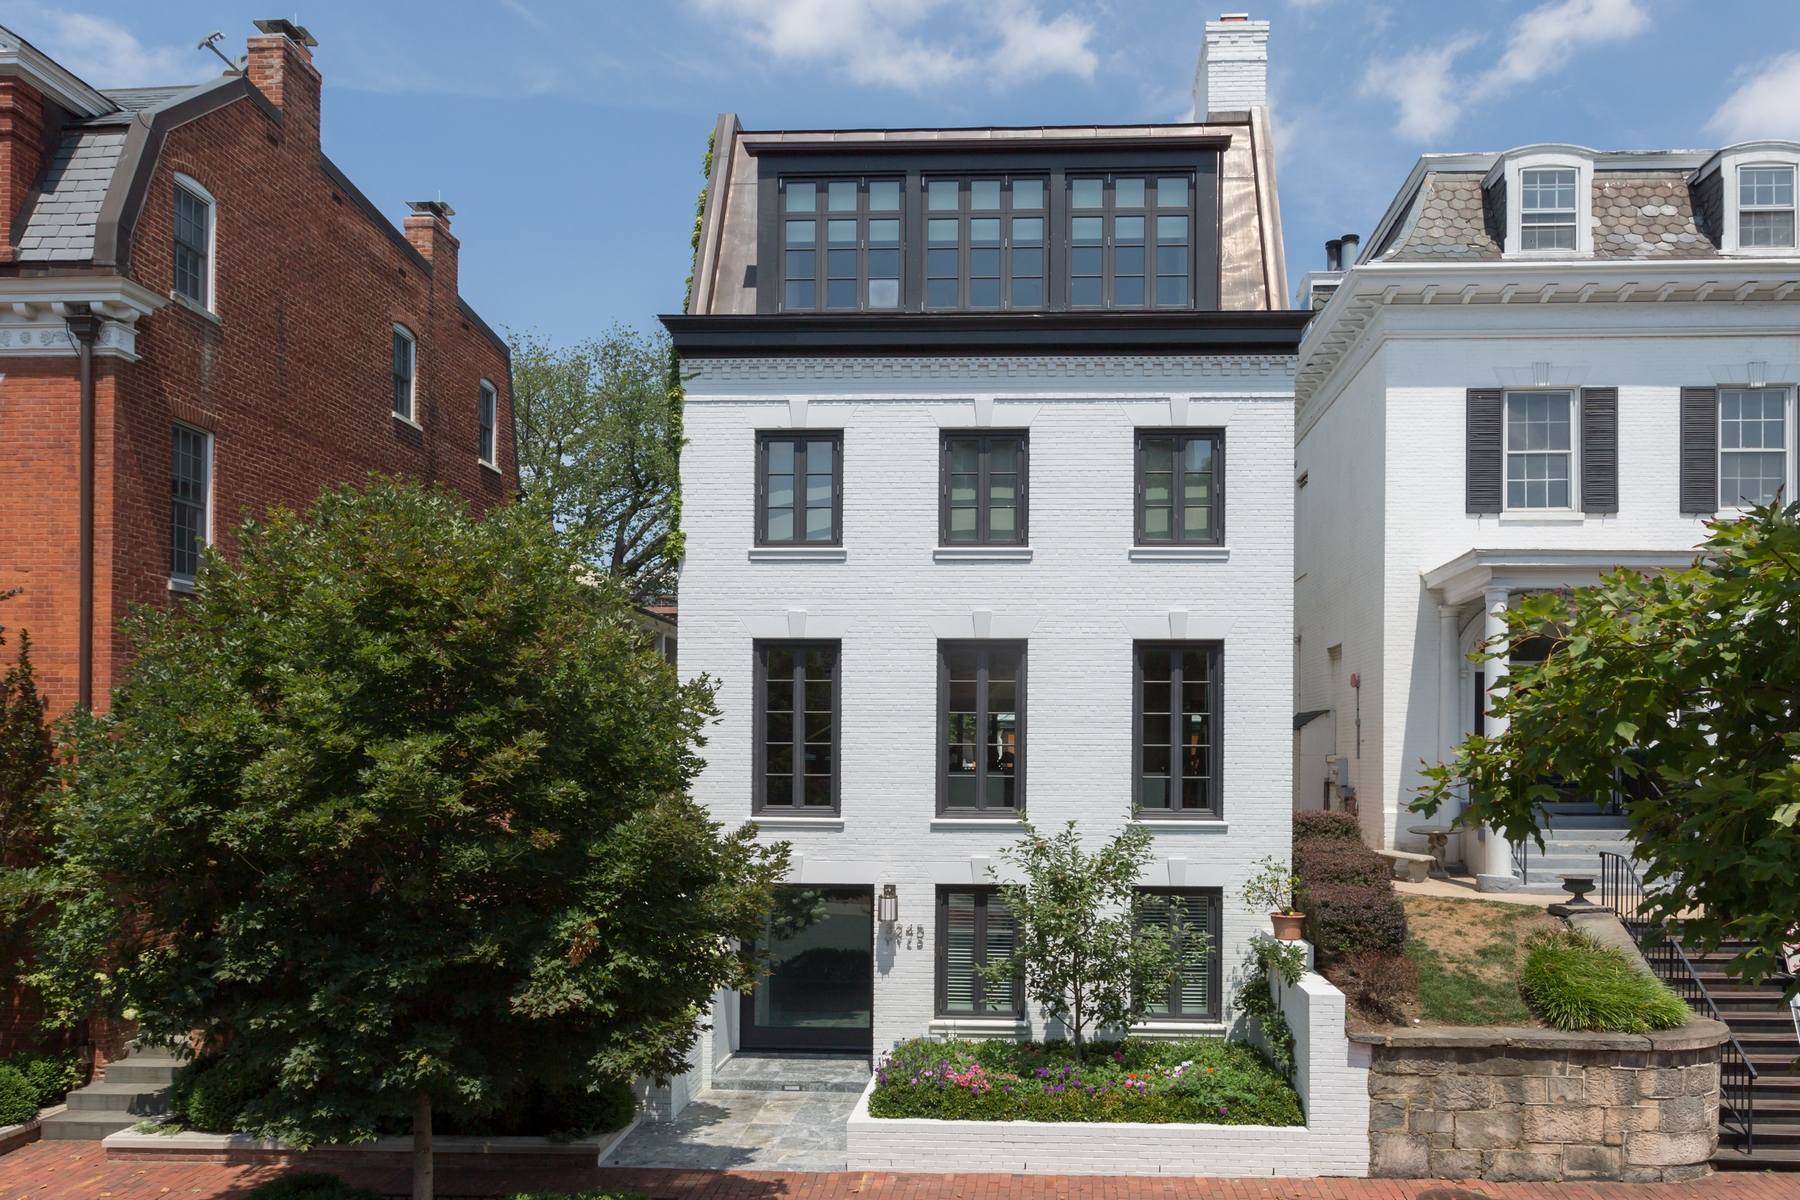 Single Family Home for Sale at Georgetown 3245 N Street NW Georgetown, Washington, District Of Columbia, 20007 United States